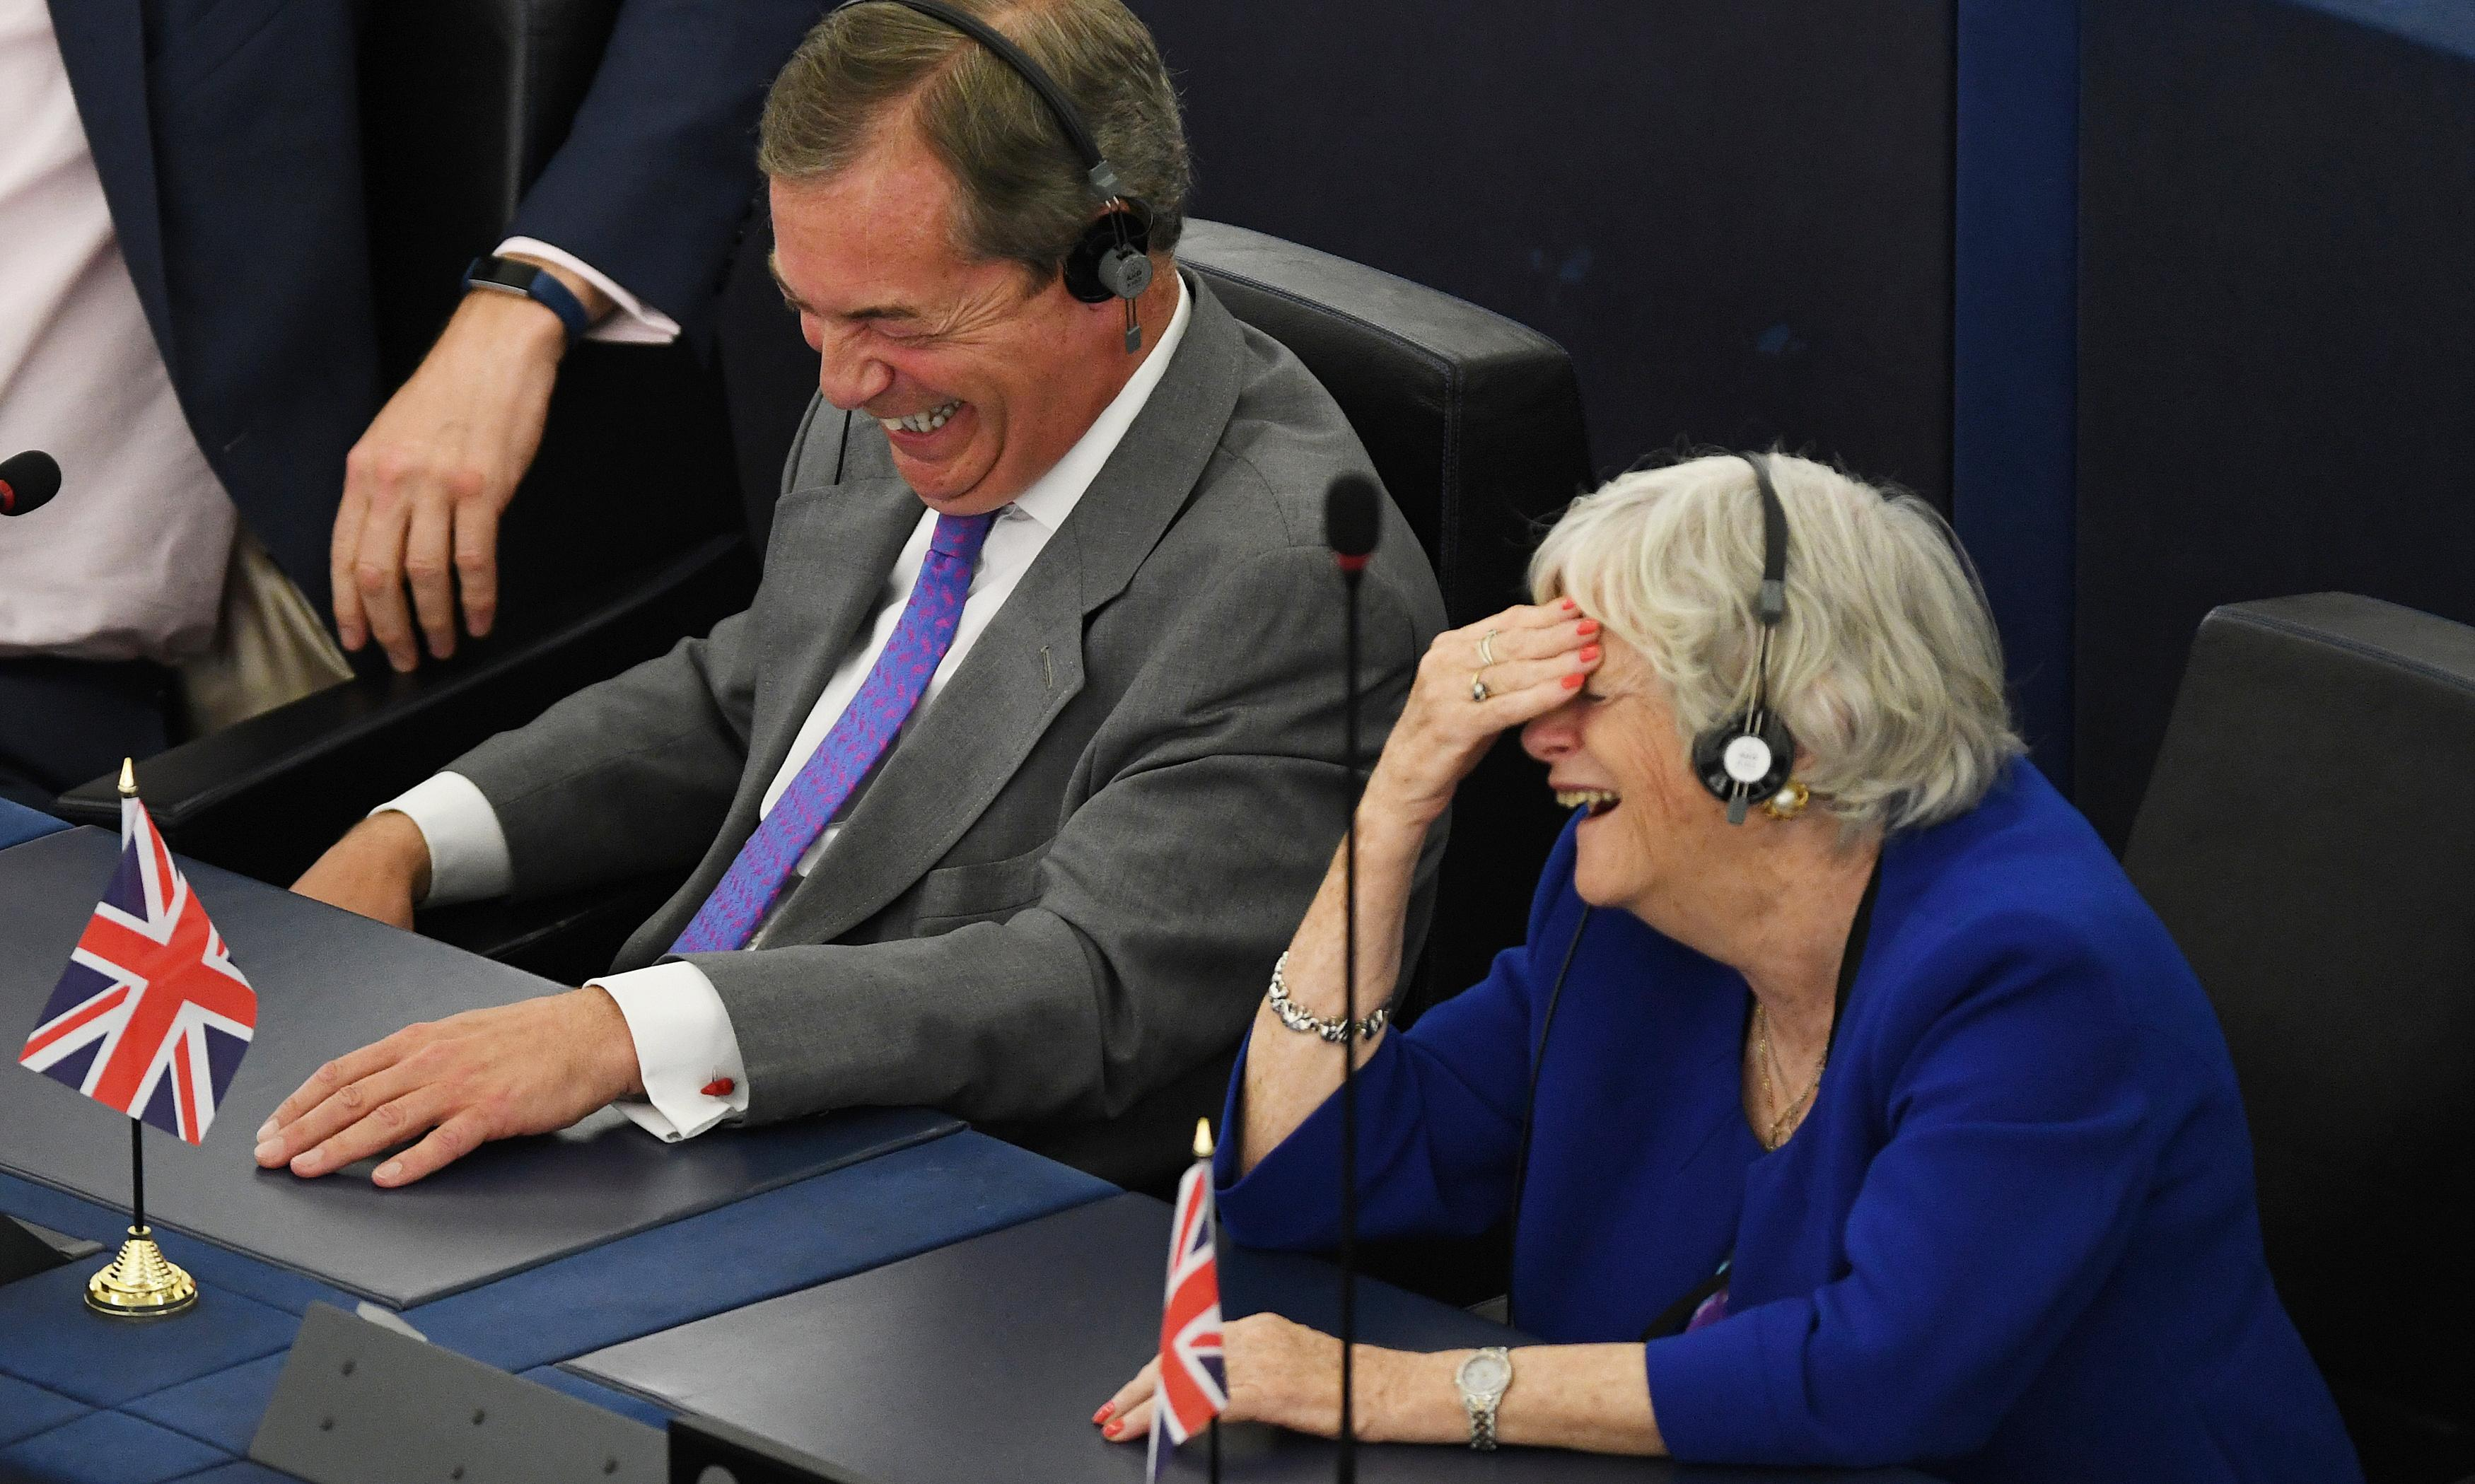 In turning their backs, Brexit MEPs behaved like attention-seeking toddlers